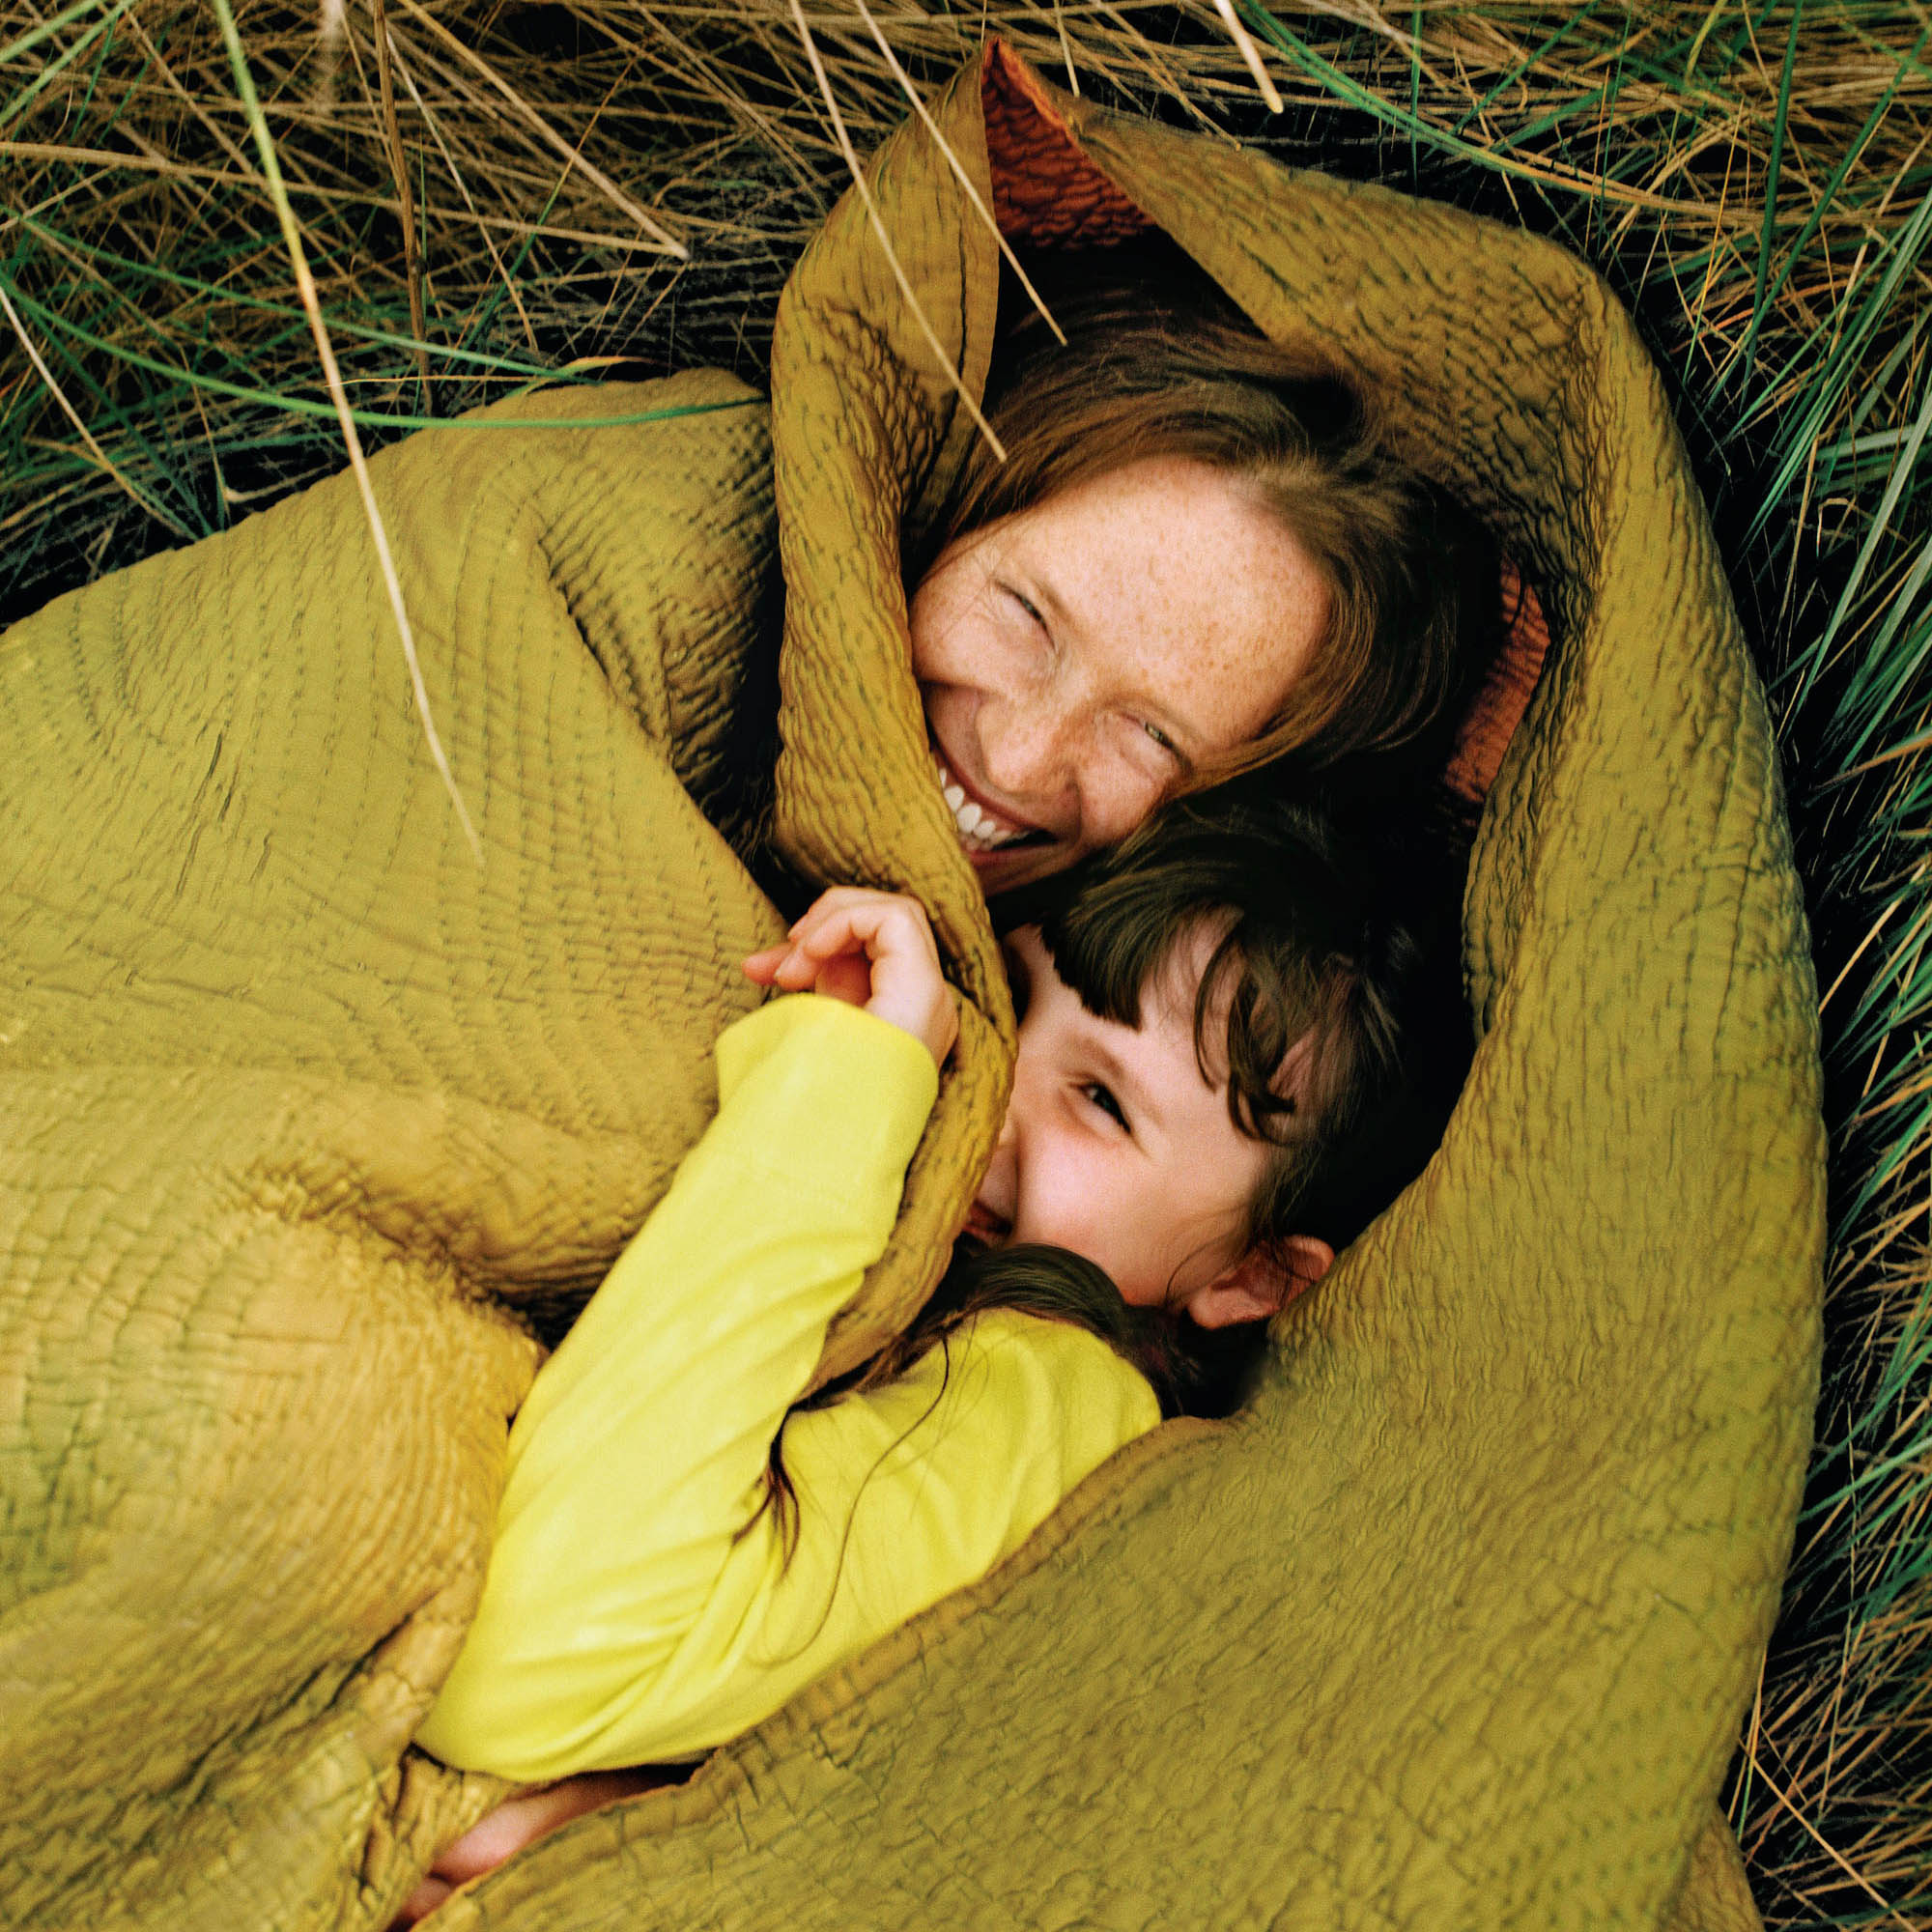 smiling mom and kid snuggling in blanket